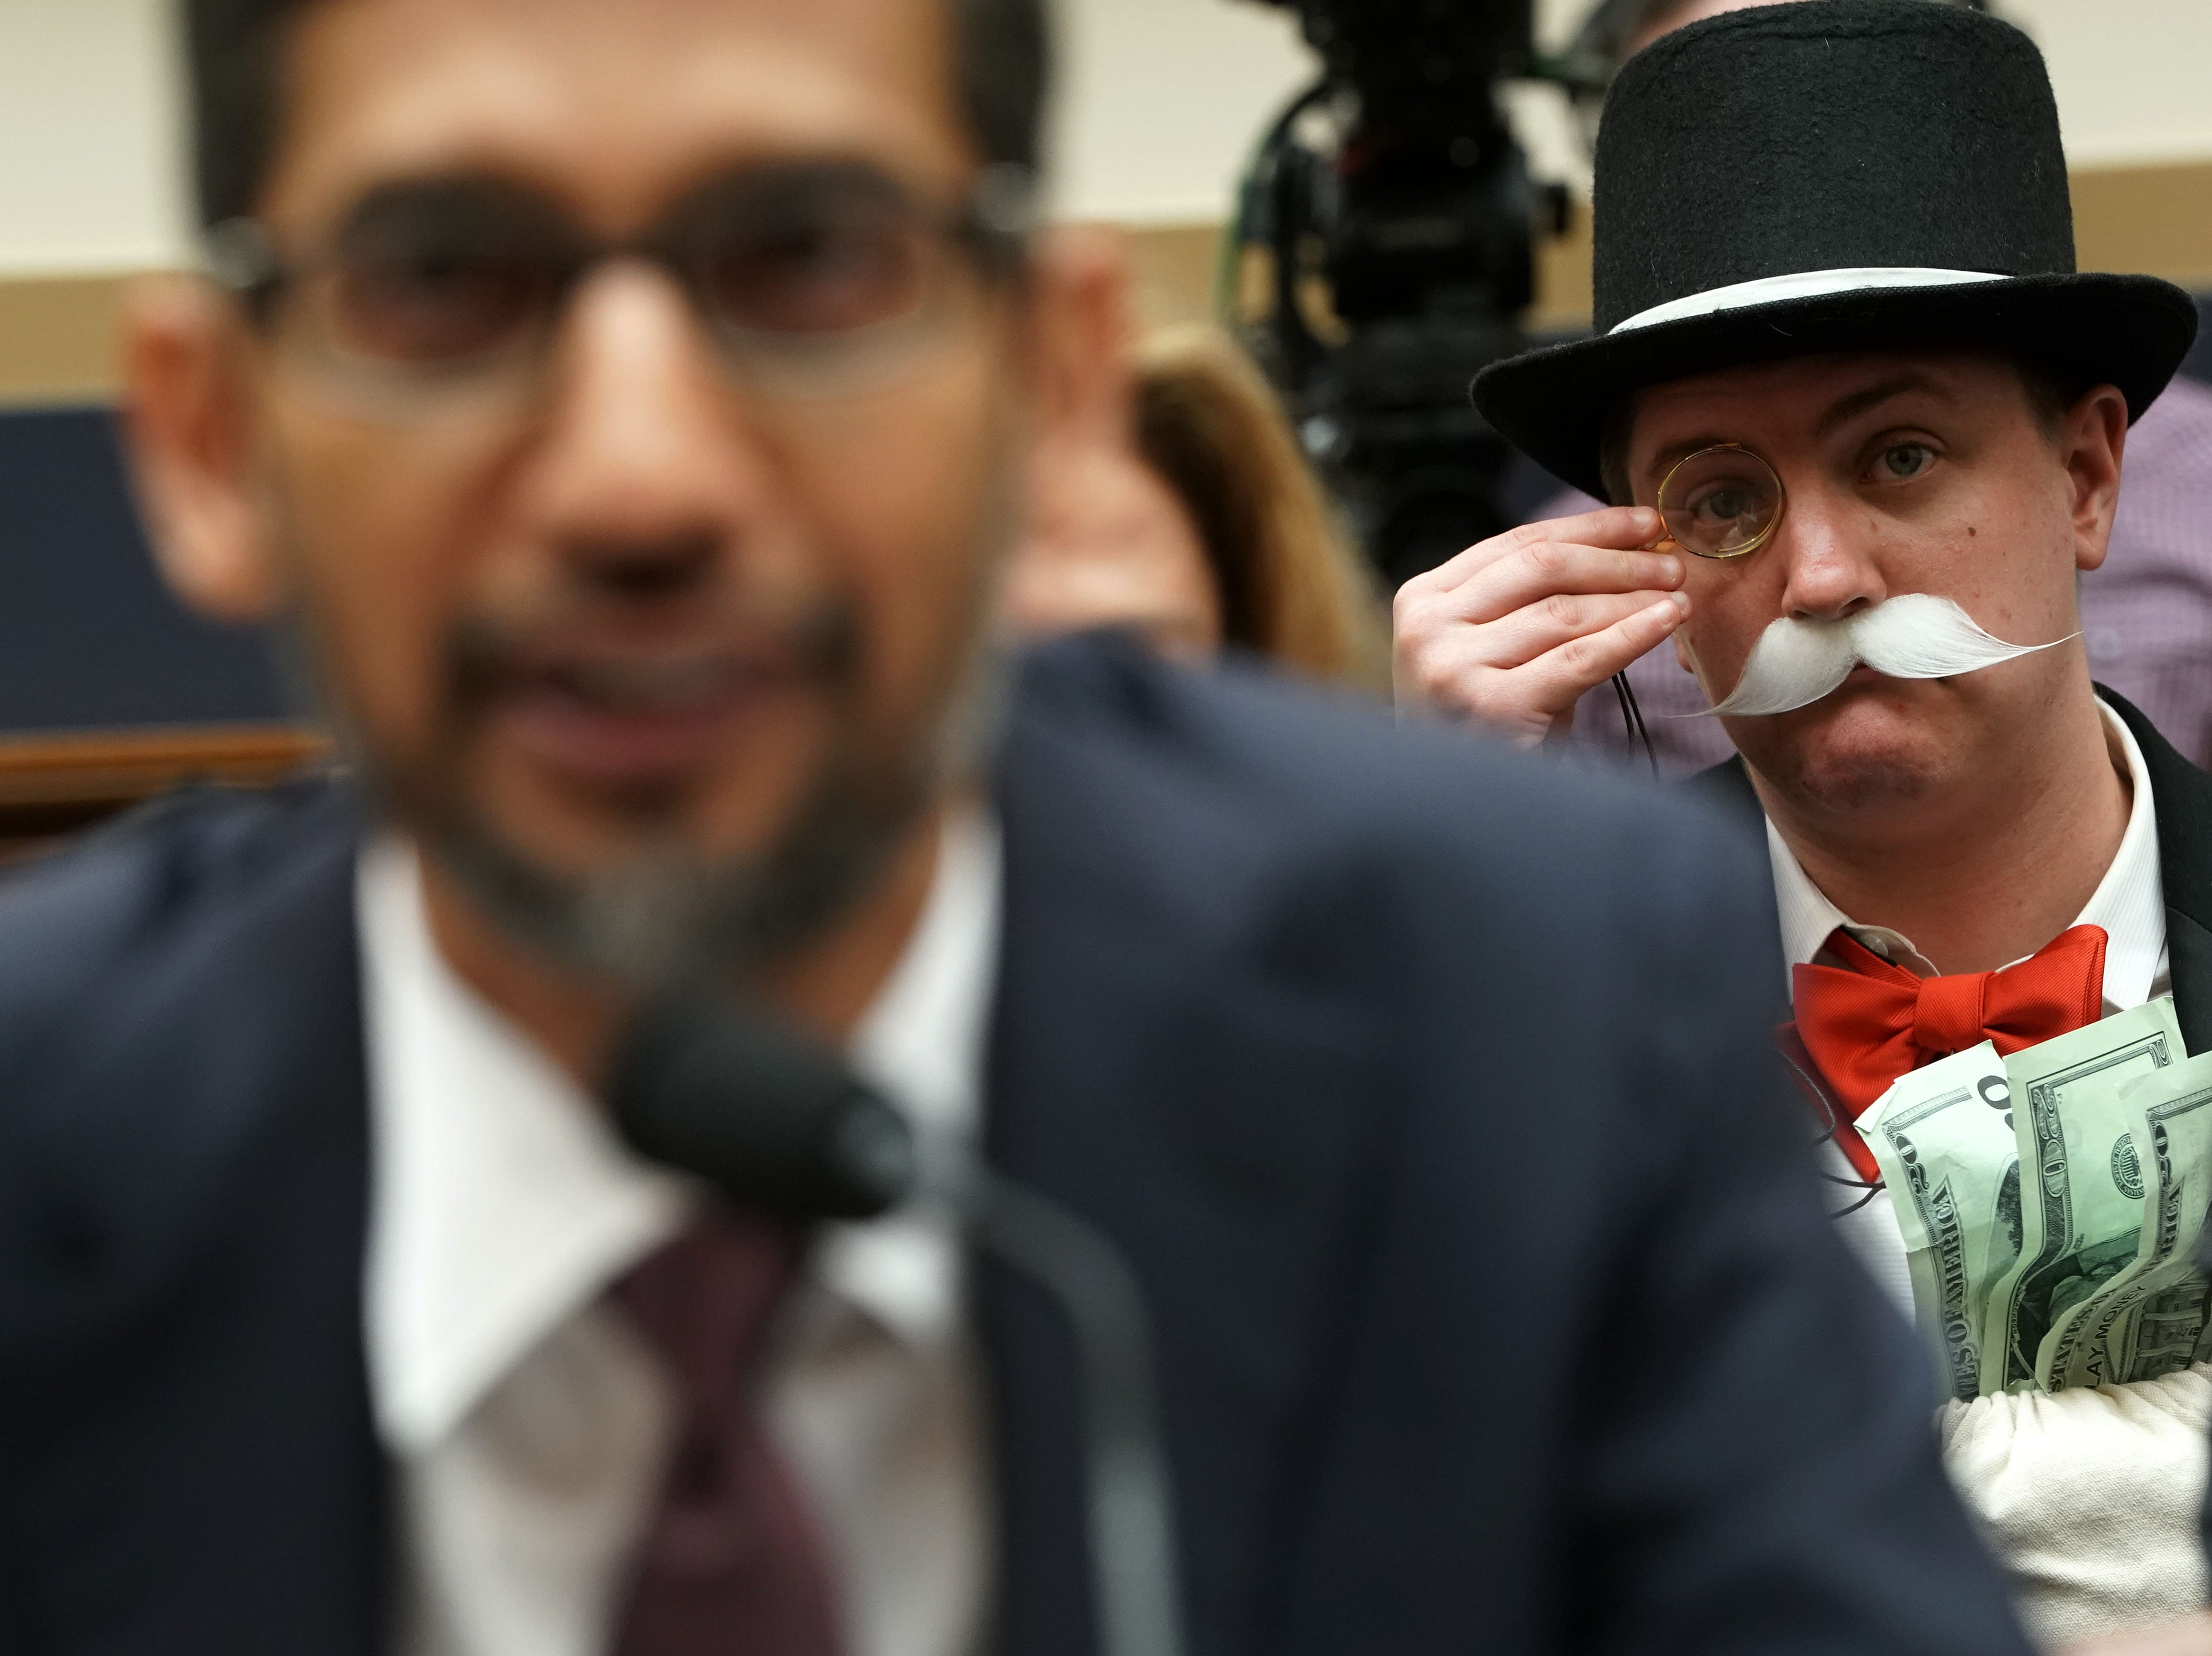 Ian Madrigal (R) dresses as Mr. Monopoly as Google CEO Sundar Pichai (L) testifies before the House Judiciary Committee at the Rayburn House Office Building on Dec. 11, 2018 in Washington, DC. The committee held a hearing on 'Transparency & Accountability: Examining Google and its Data Collection, Use and Filtering Practices.'